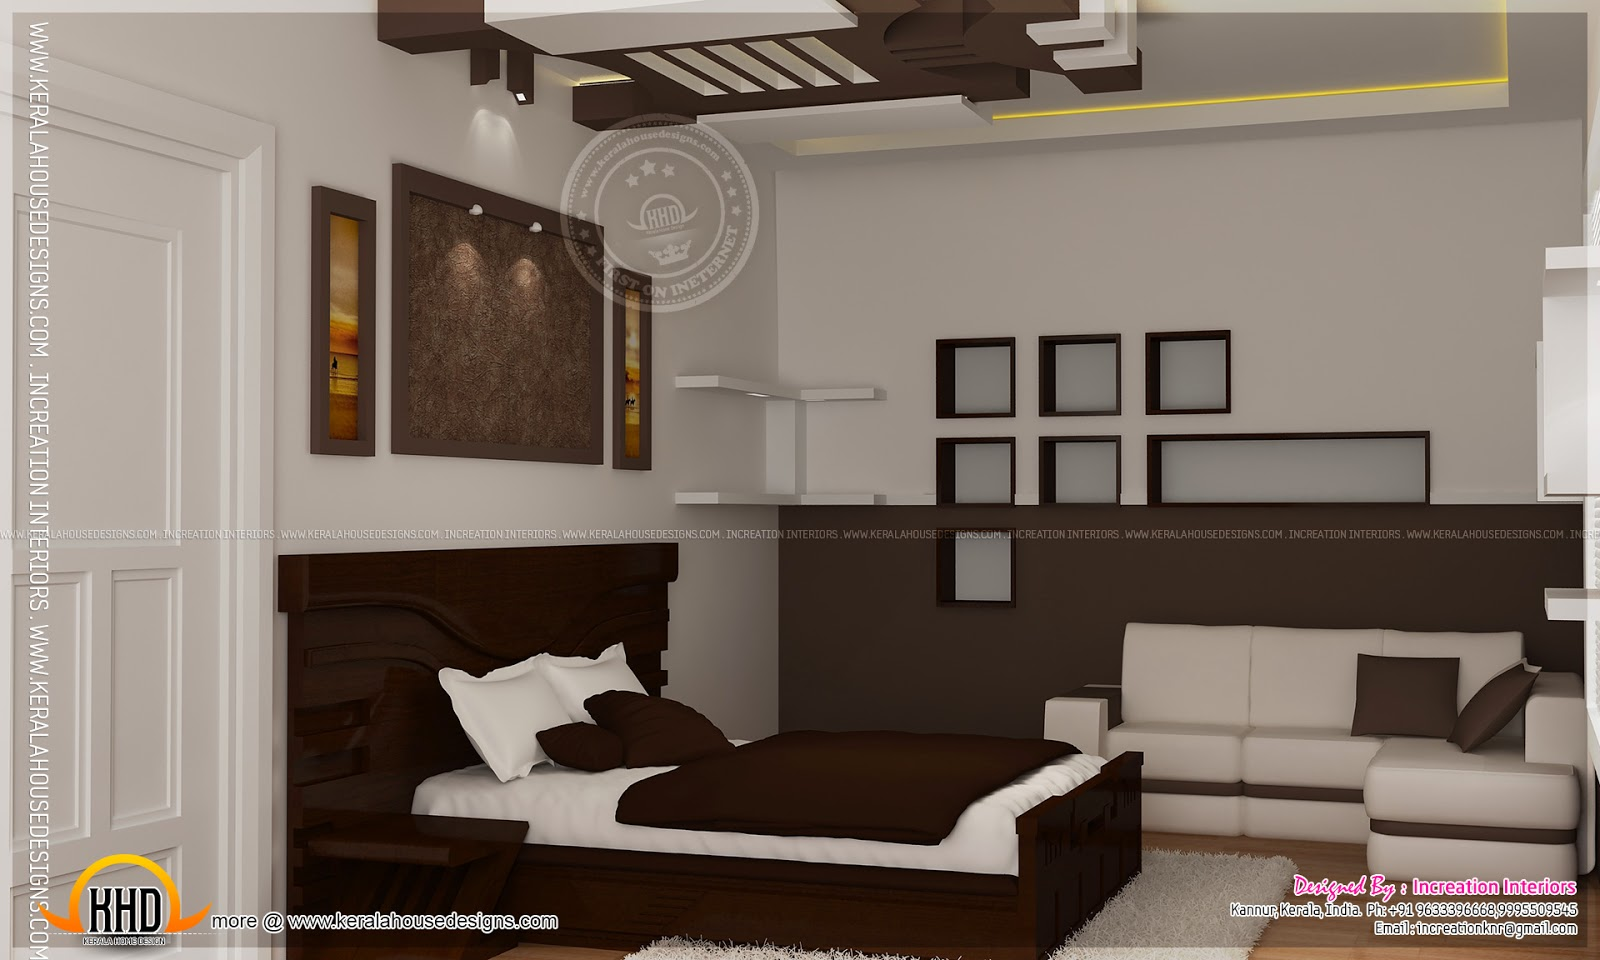 January 2014 kerala home design and floor plans Interior design ideas for kerala houses